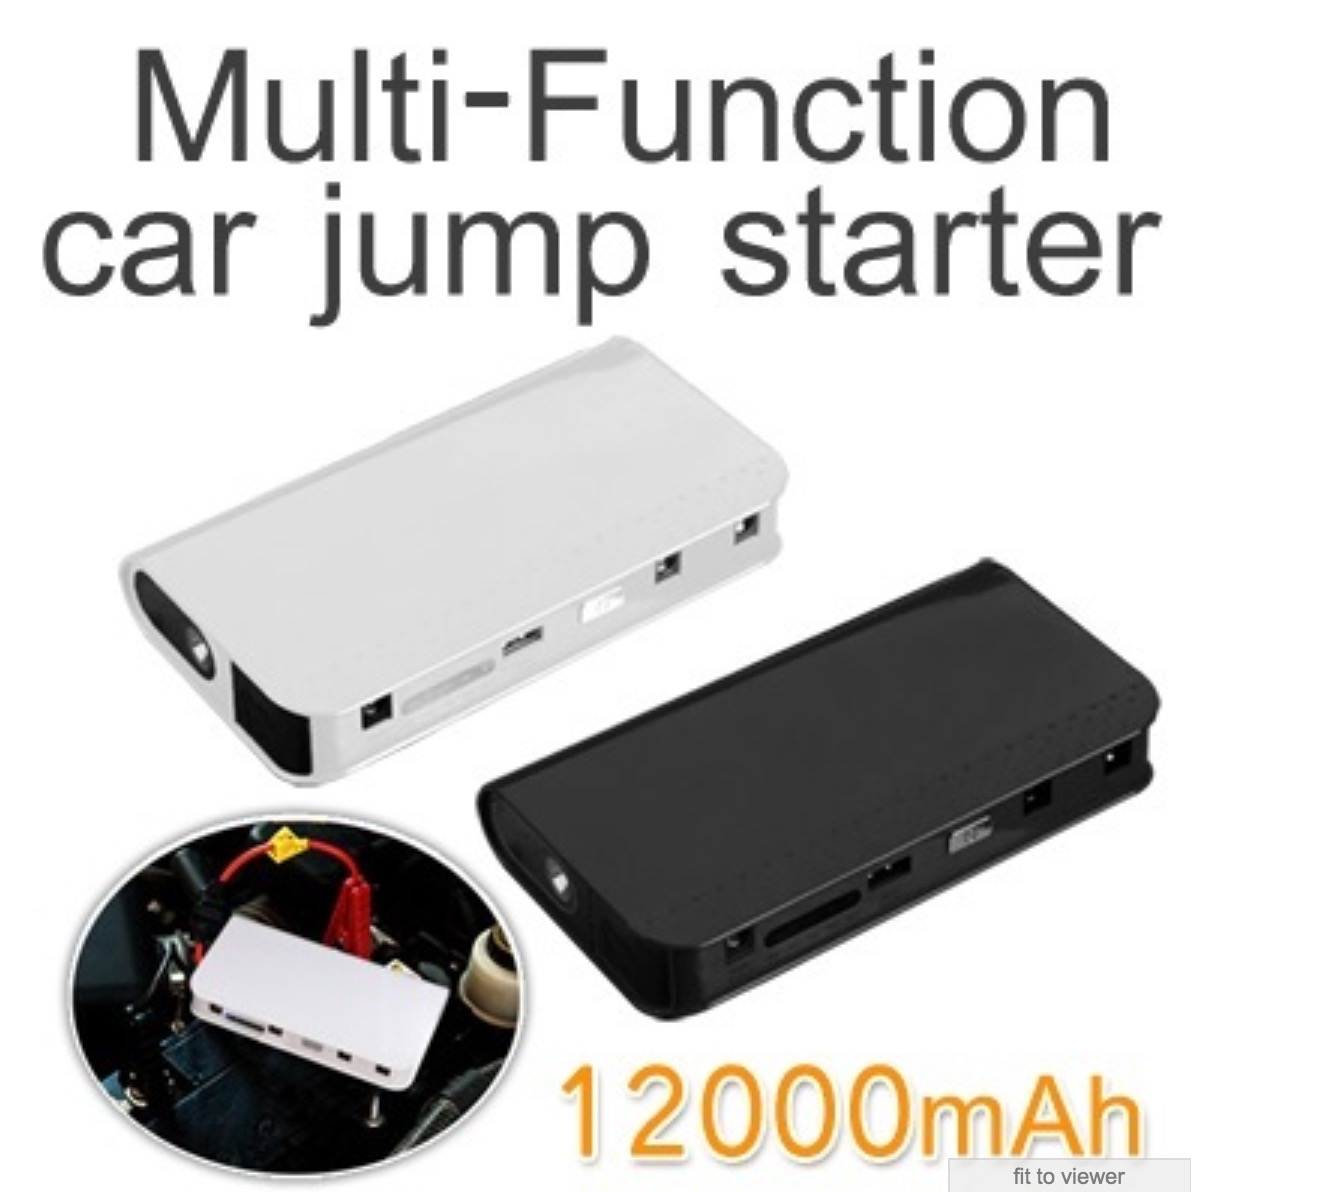 Power Bank for Mobile Phone, Tablet, Laptop